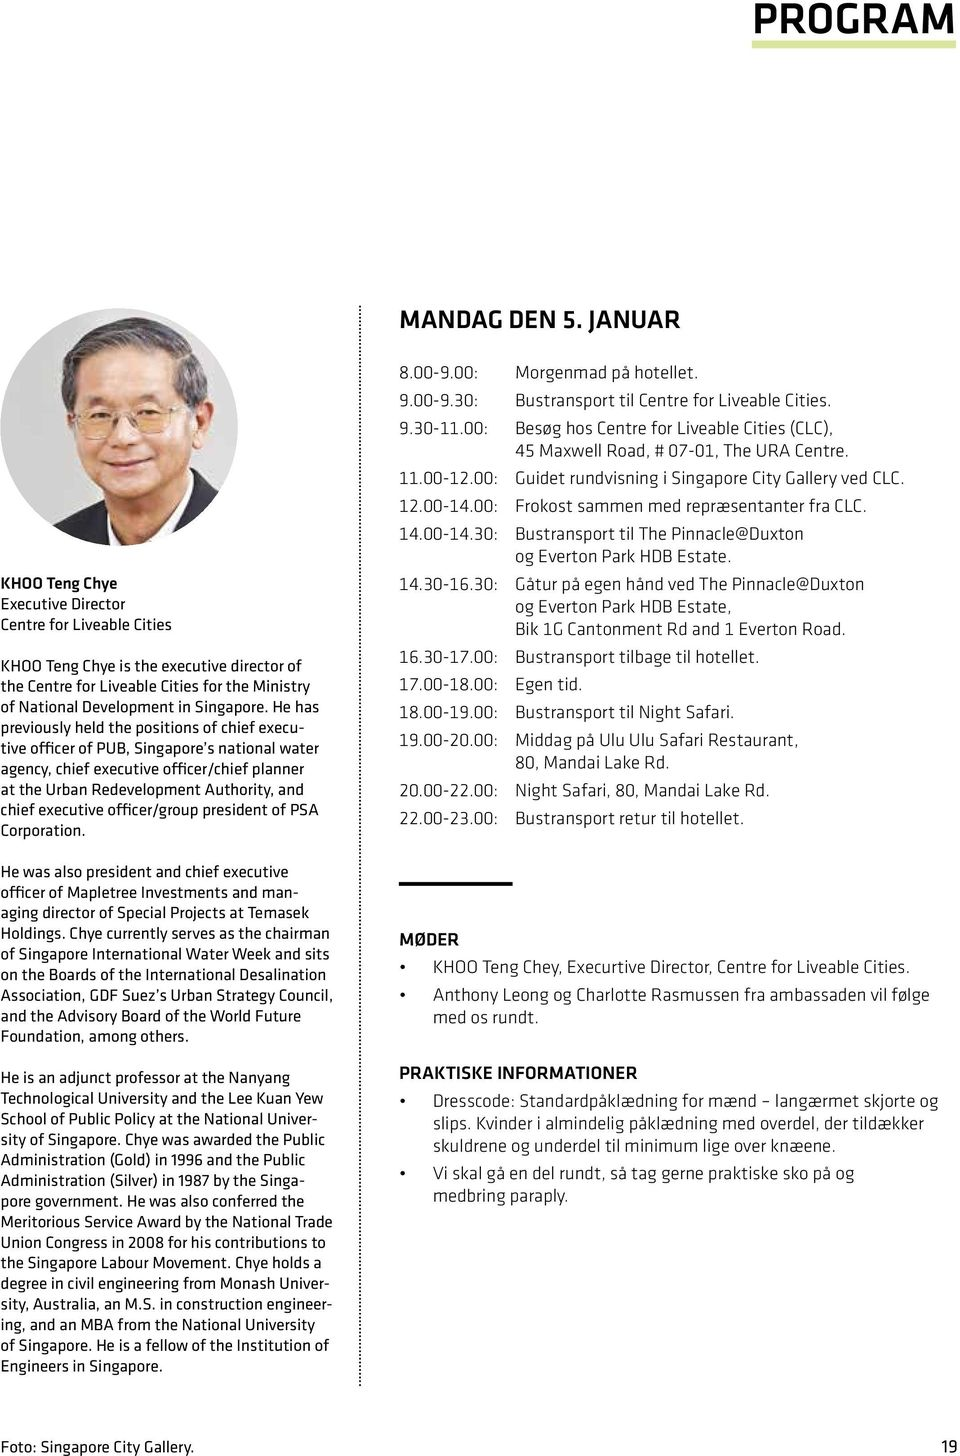 He has previously held the positions of chief executive officer of PUB, Singapore s national water agency, chief executive officer/chief planner at the Urban Redevelopment Authority, and chief